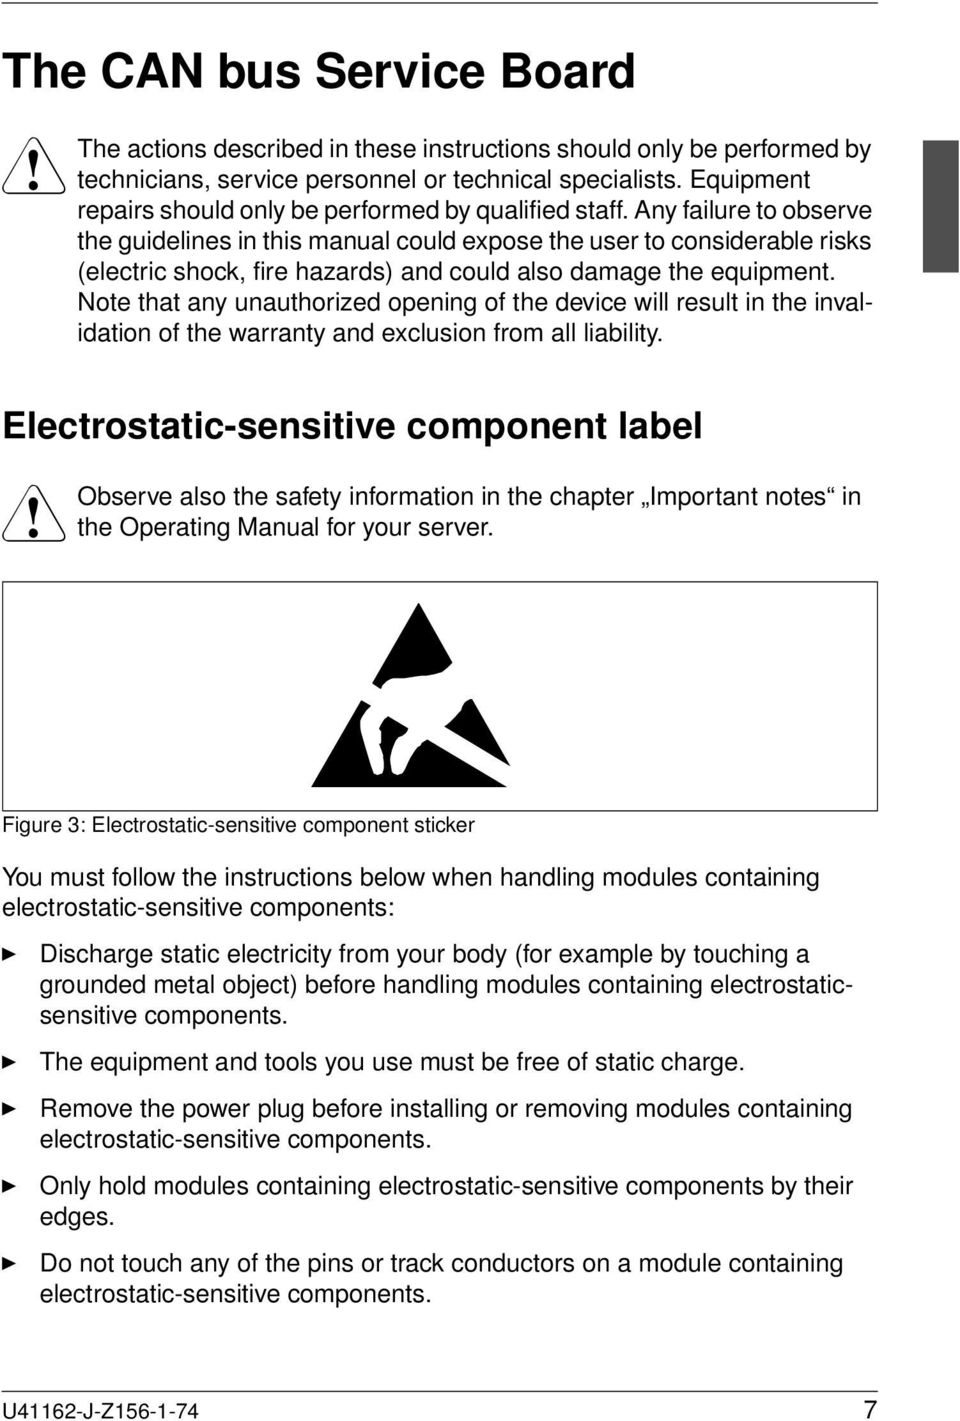 Any failure to observe the guidelines in this manual could expose the user to considerable risks (electric shock, fire hazards) and could also damage the equipment.